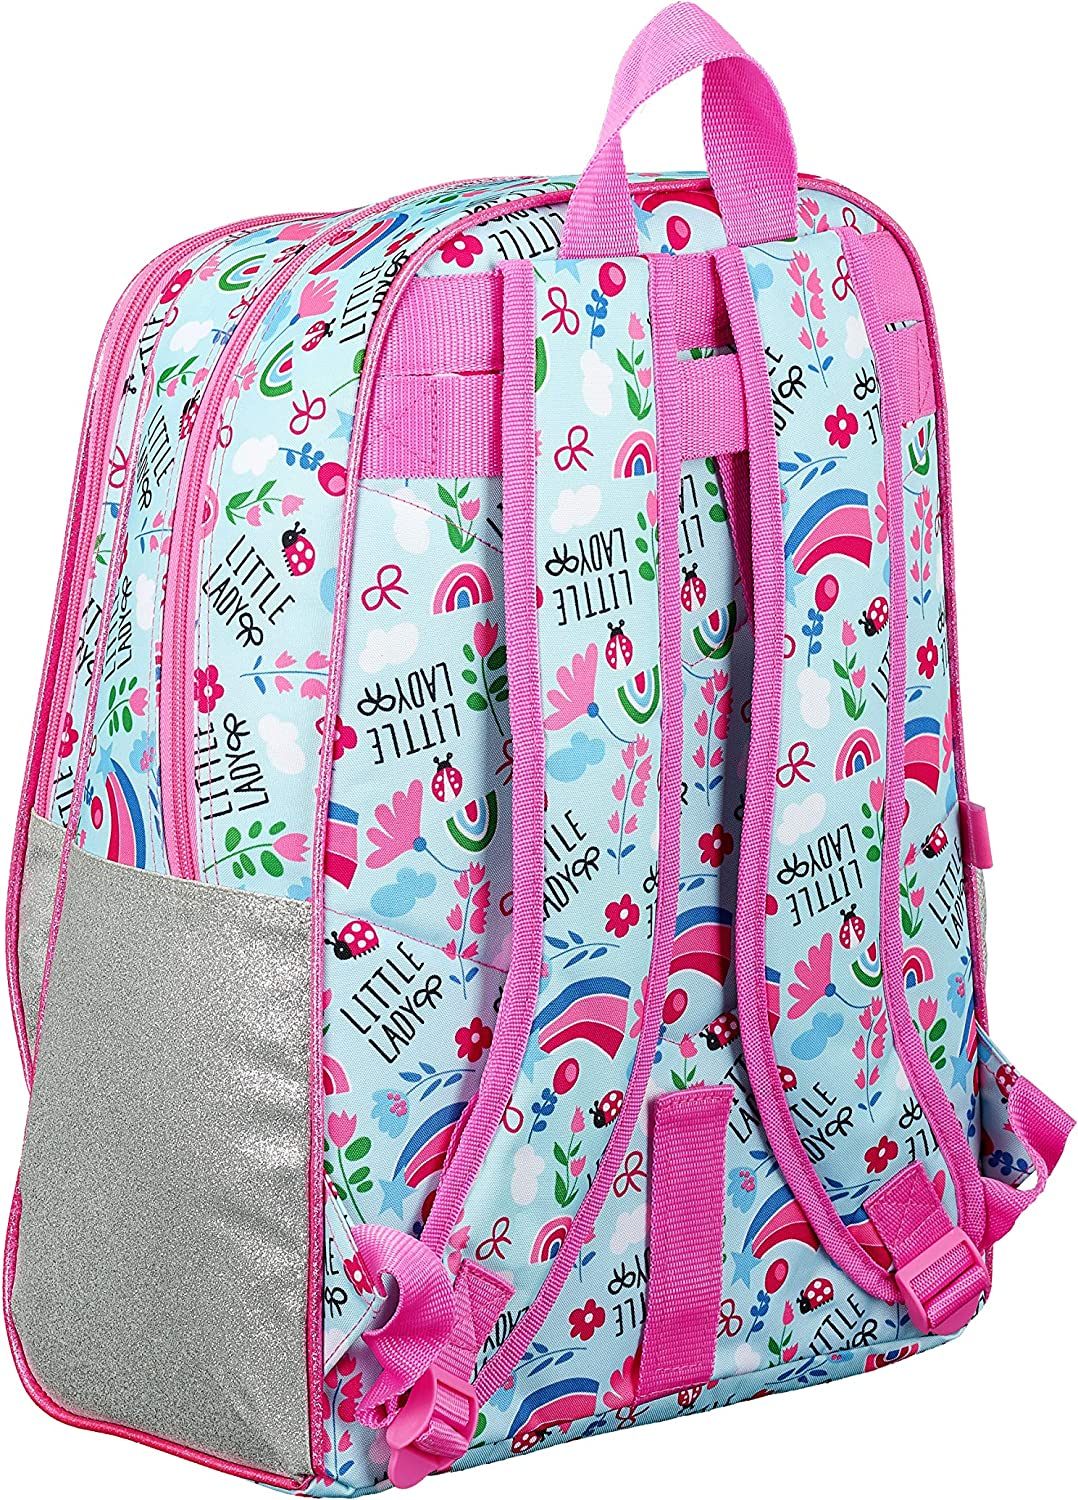 Glowlab Little Lady Adaptable Backpack 42cm